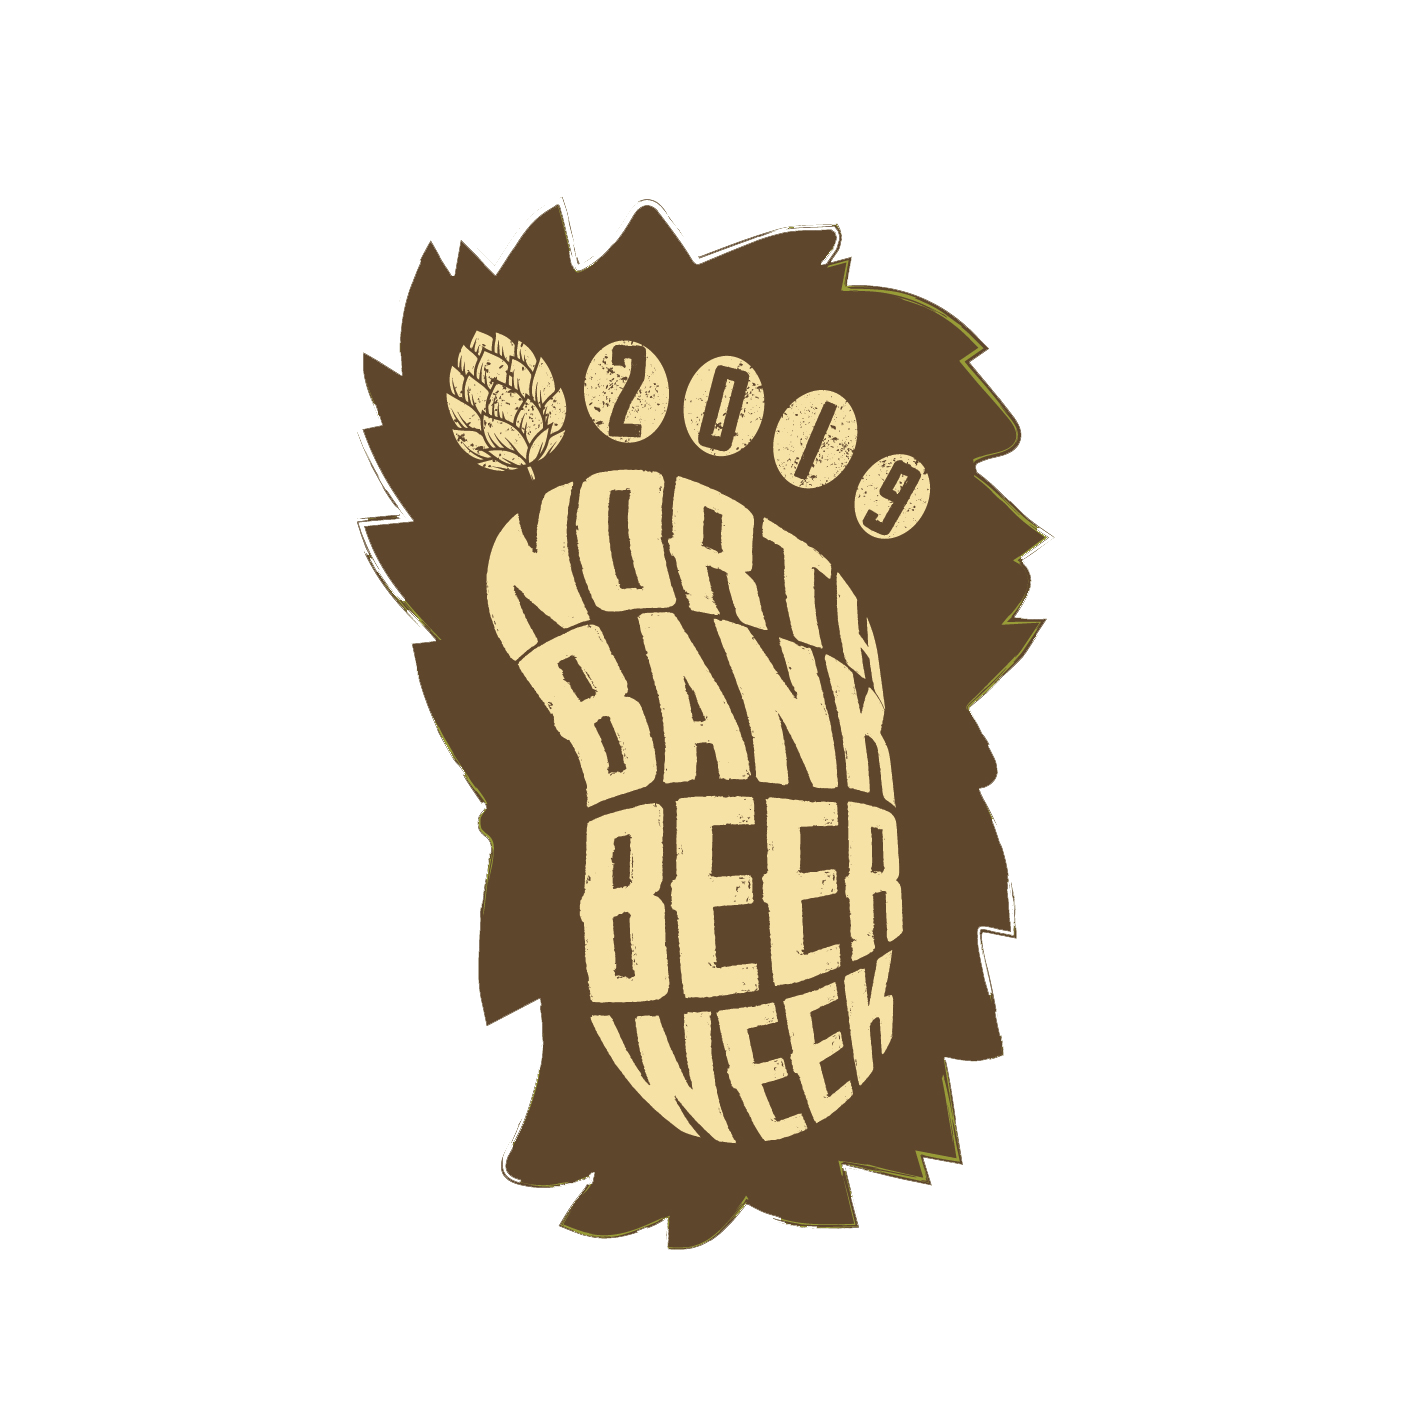 North Bank Beer Week